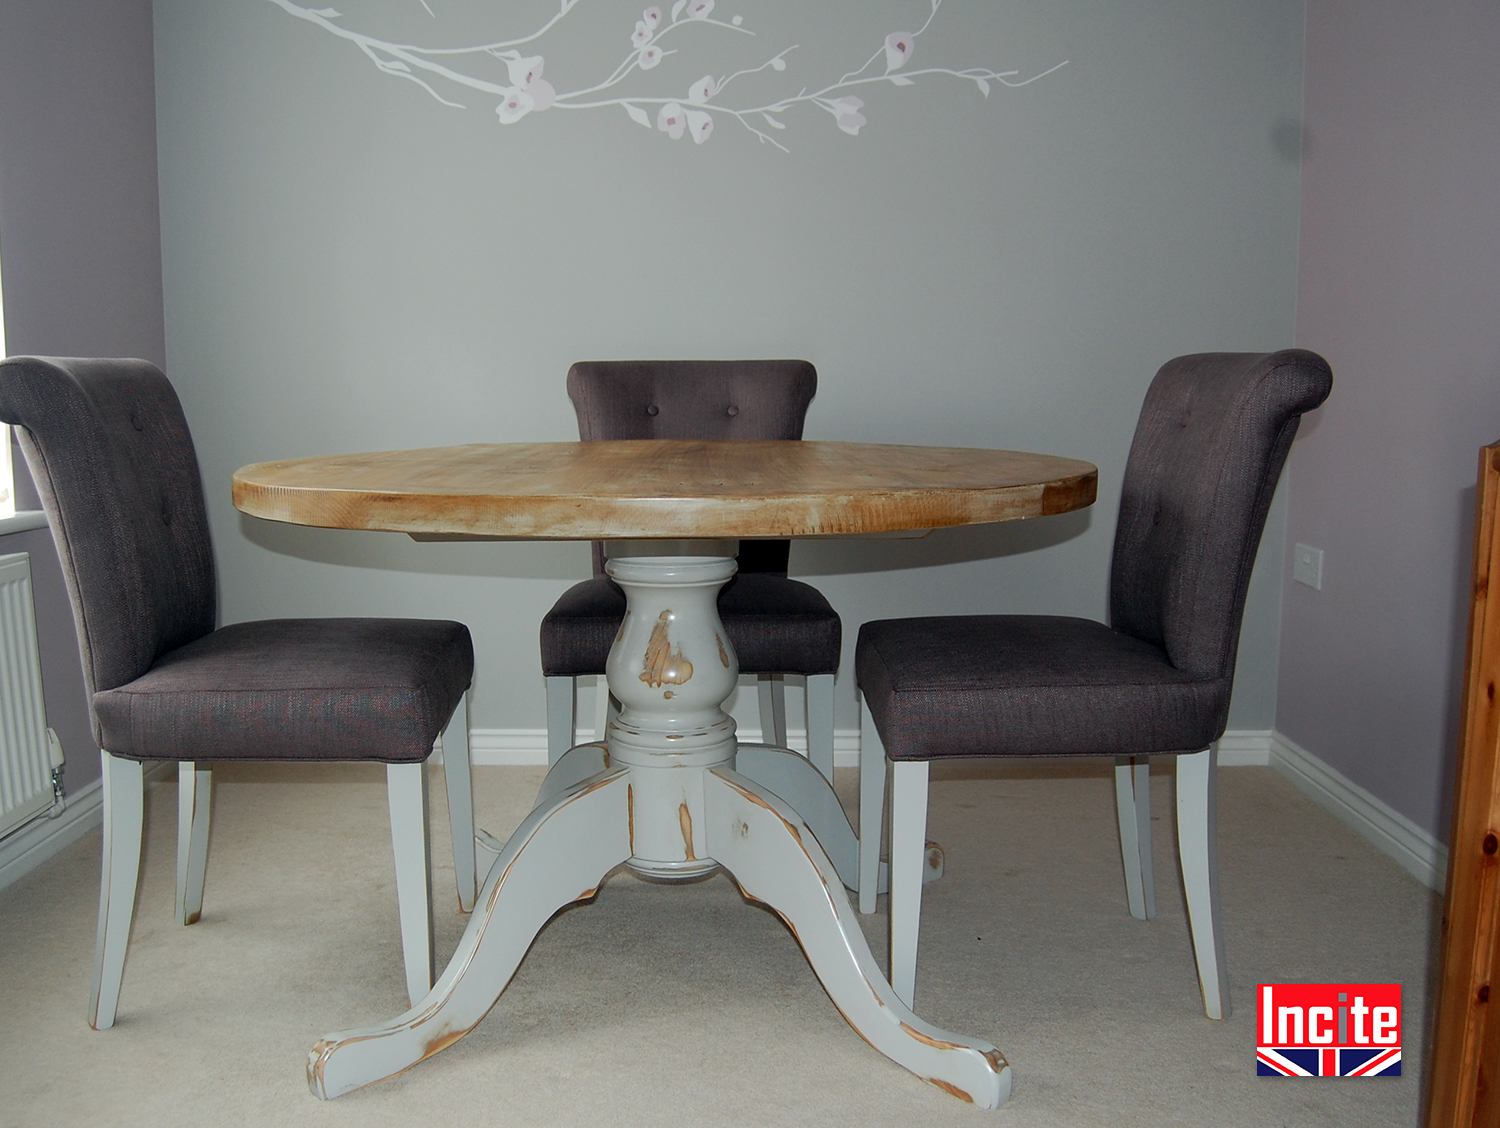 Distressed painted and pine round tables by incite derby - Painted dining tables distressed ...